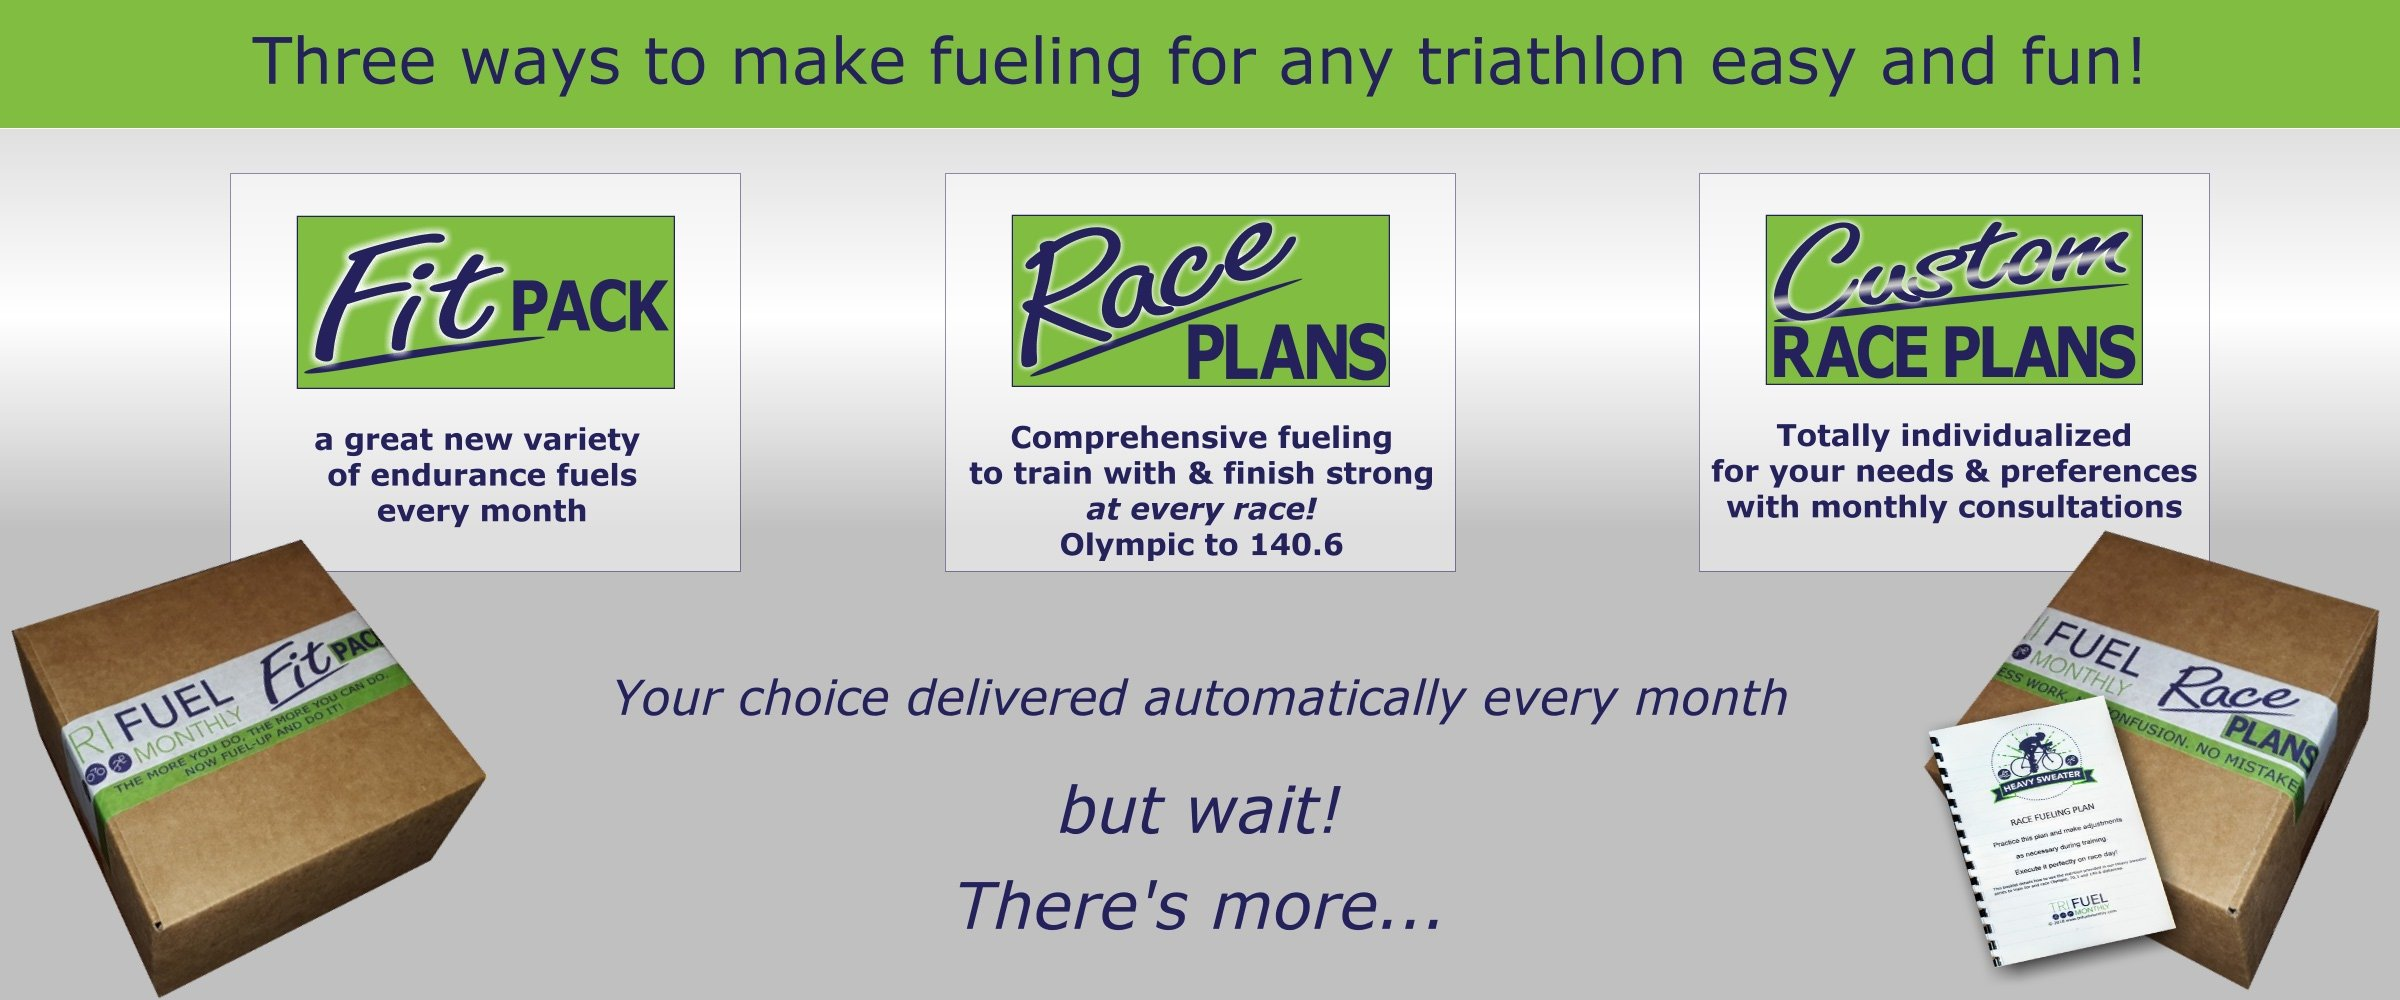 Three ways to make fueling for any triathlon easy and fun! Fit Pack, Race Plans and Custom Race Plans. Your choice delivered automatically every month. But wait, there's more!